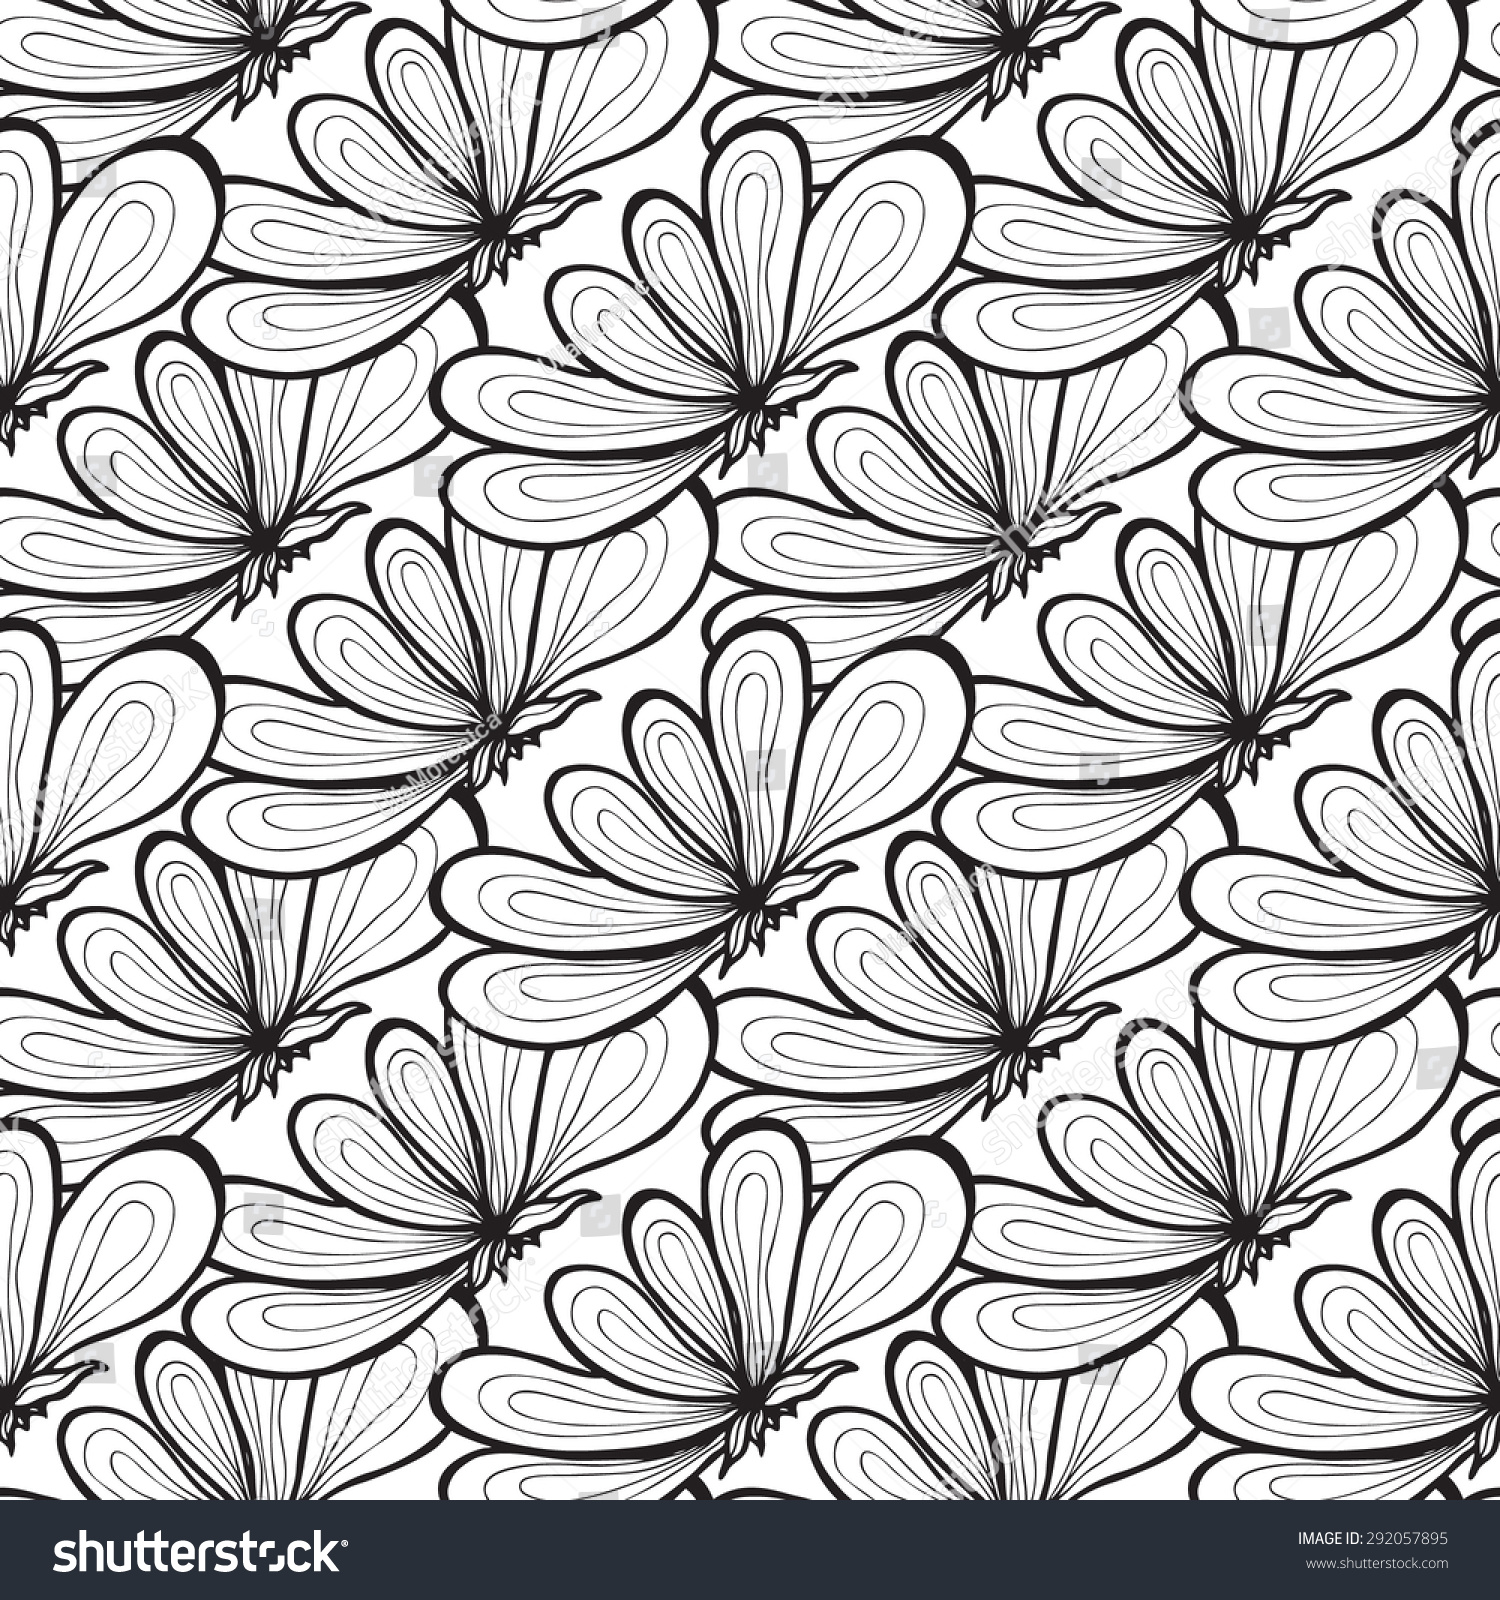 Vector Creative Hand Drawn Abstract Seamless Pattern Of Stylized